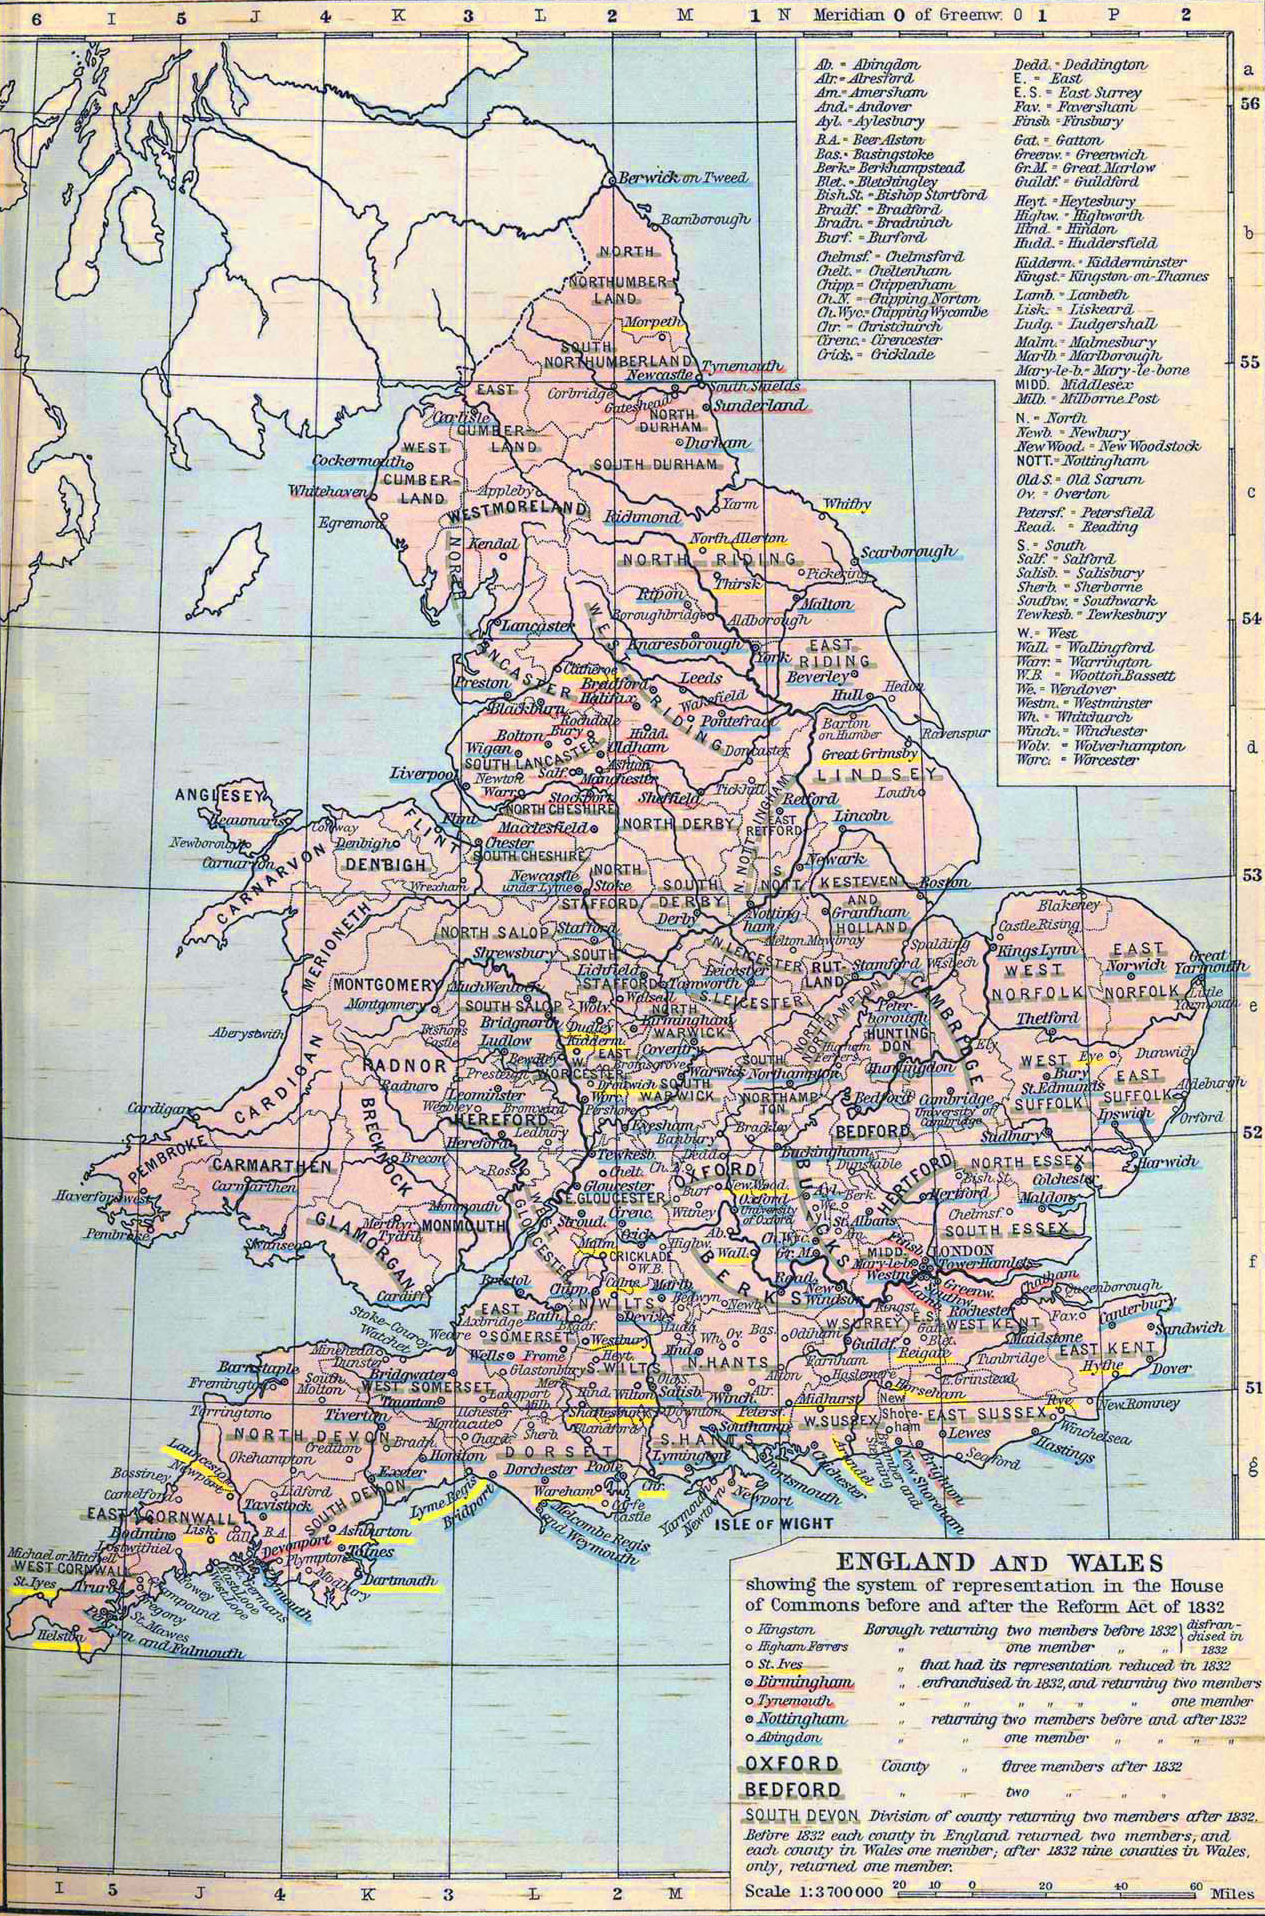 Map of England and Wales in 1832